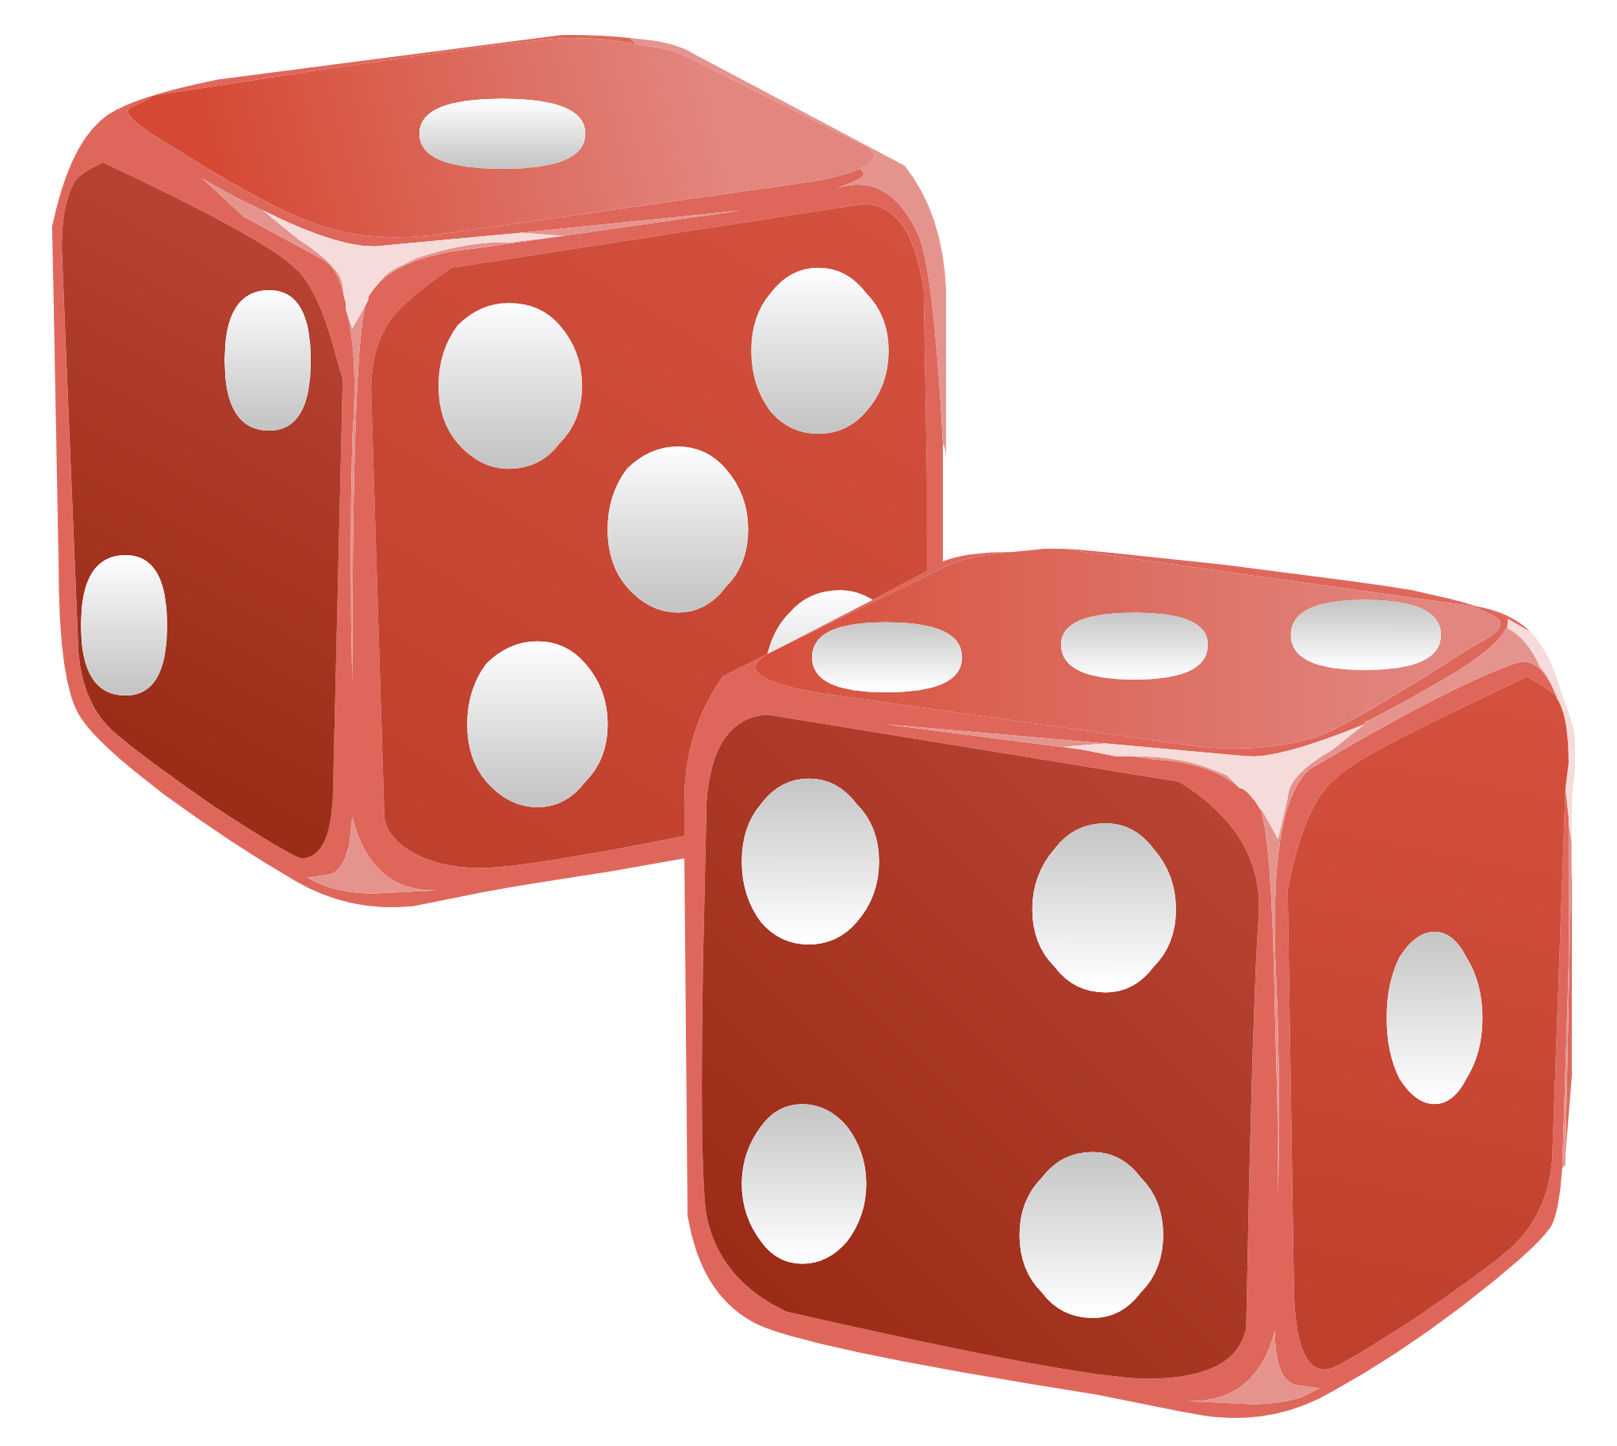 Dice clipart transparent. Red clip arts for